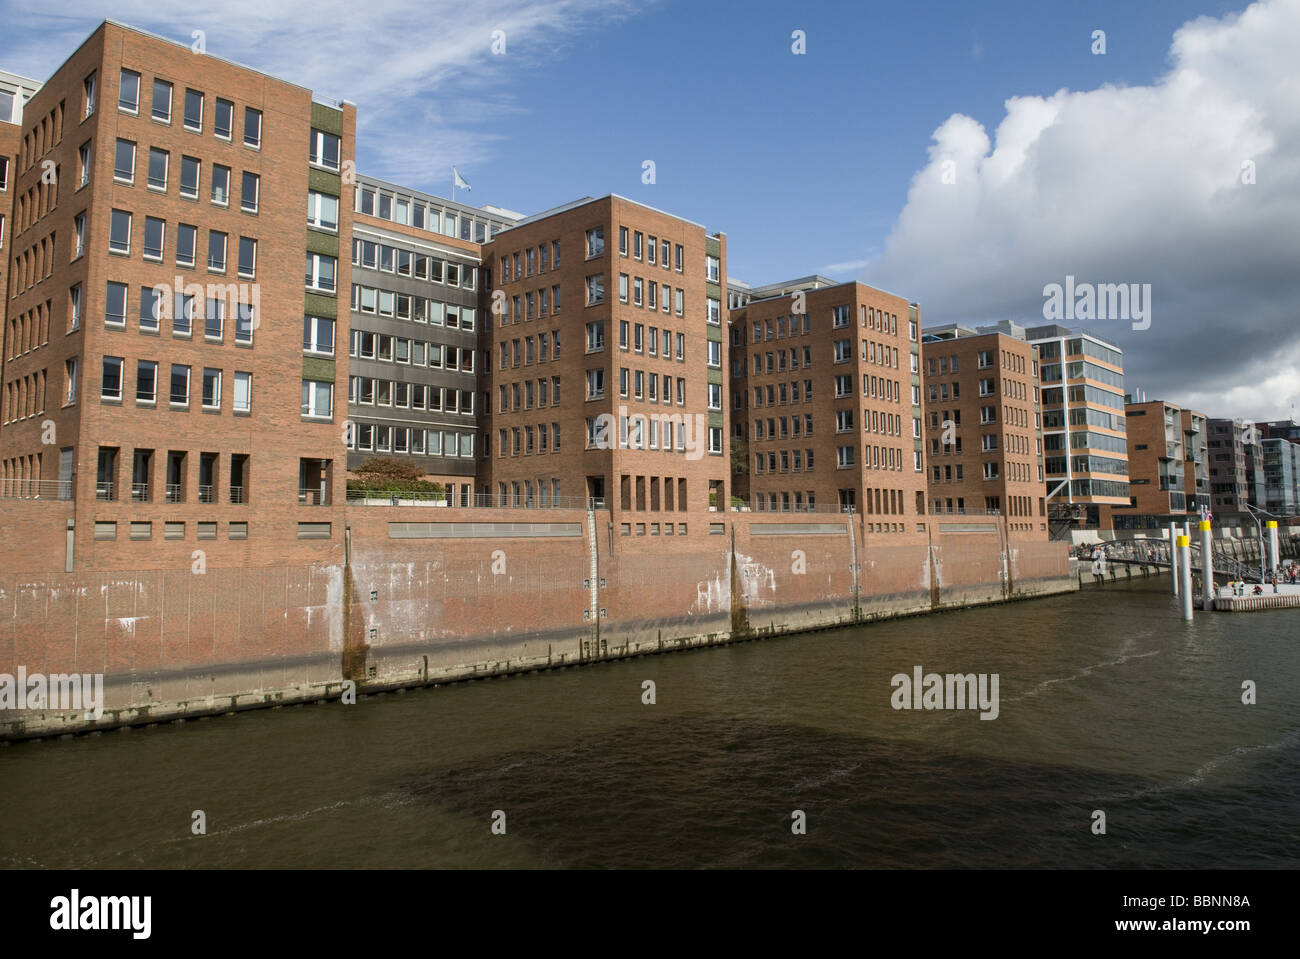 Geografia / viaggi, Germania, Amburgo, HafenCity, Additional-Rights-Clearance-Info-Not-Available Immagini Stock